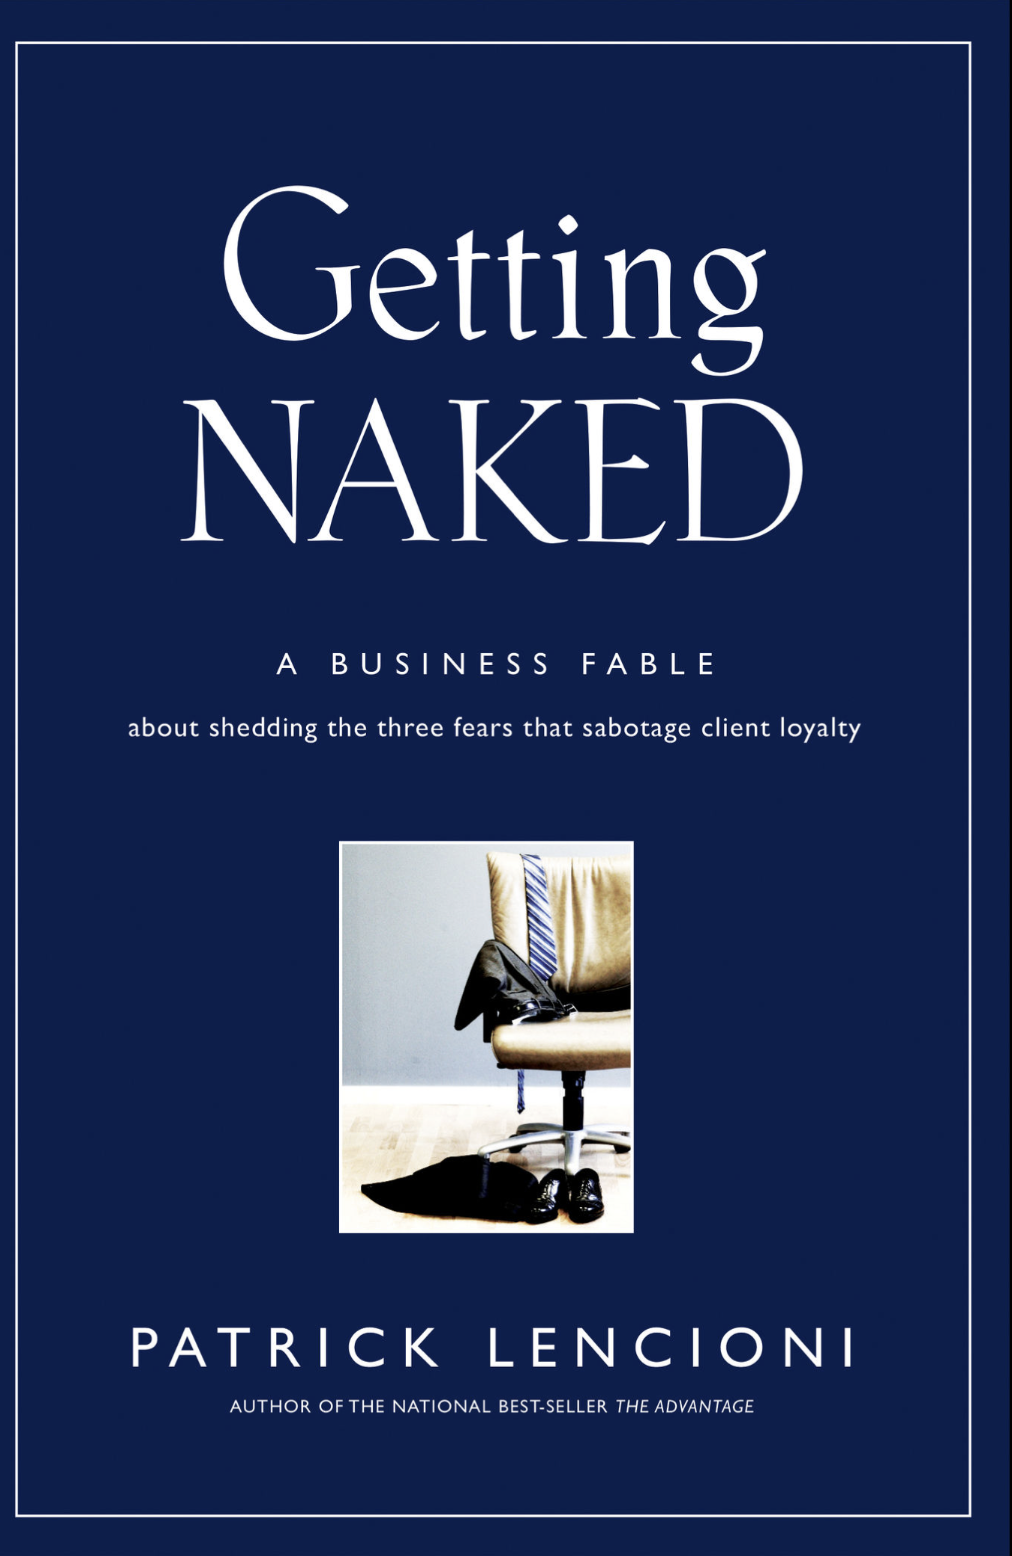 GettingNaked.png